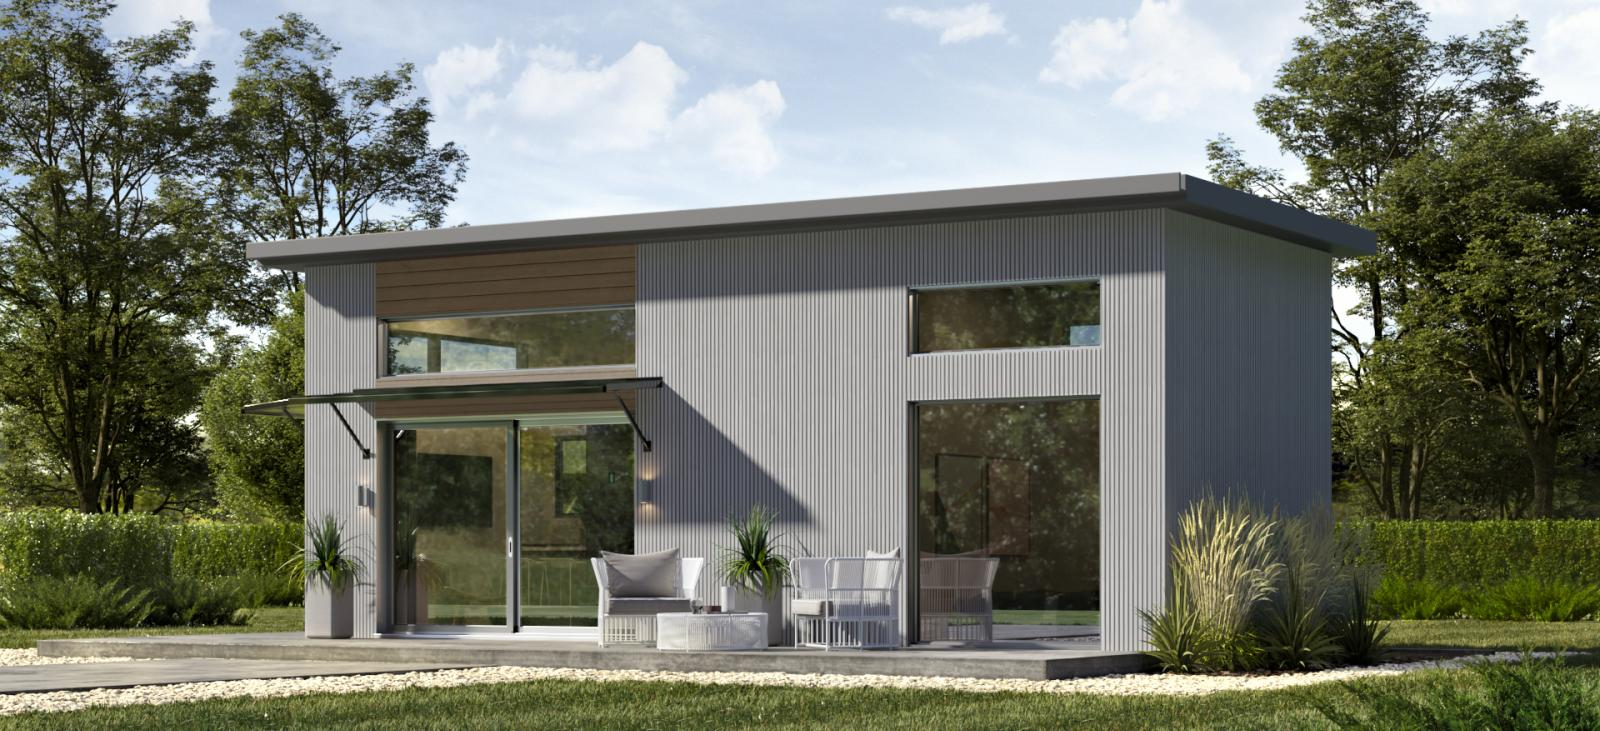 Best Modern Prefab Modular Homes For Sale Dvele